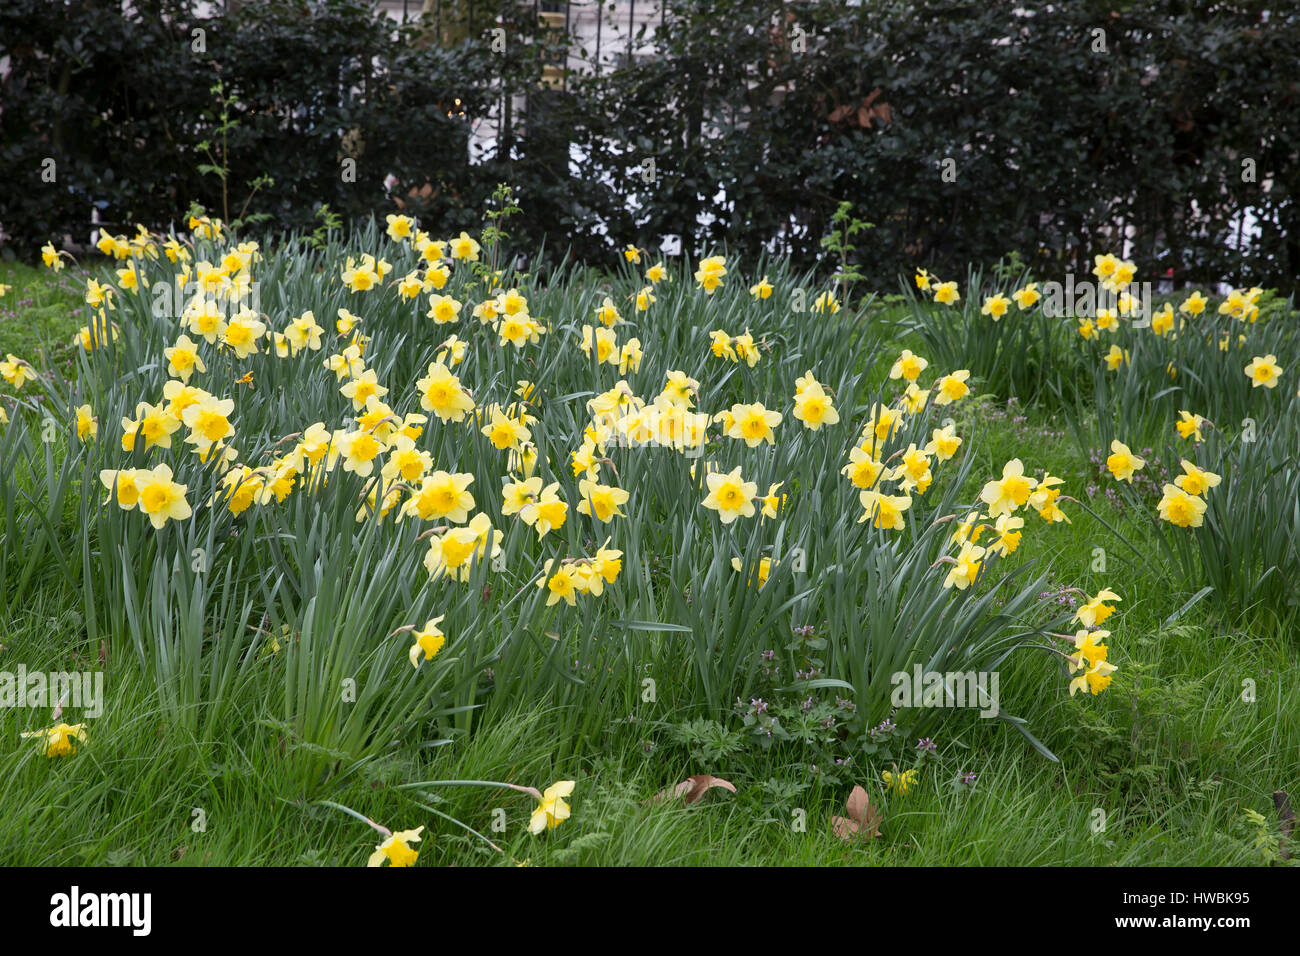 London, UK. 20th Mar, 2017. Daffodils in London on the first day of Spring Credit: keith Larby/Alamy Live News - Stock Image